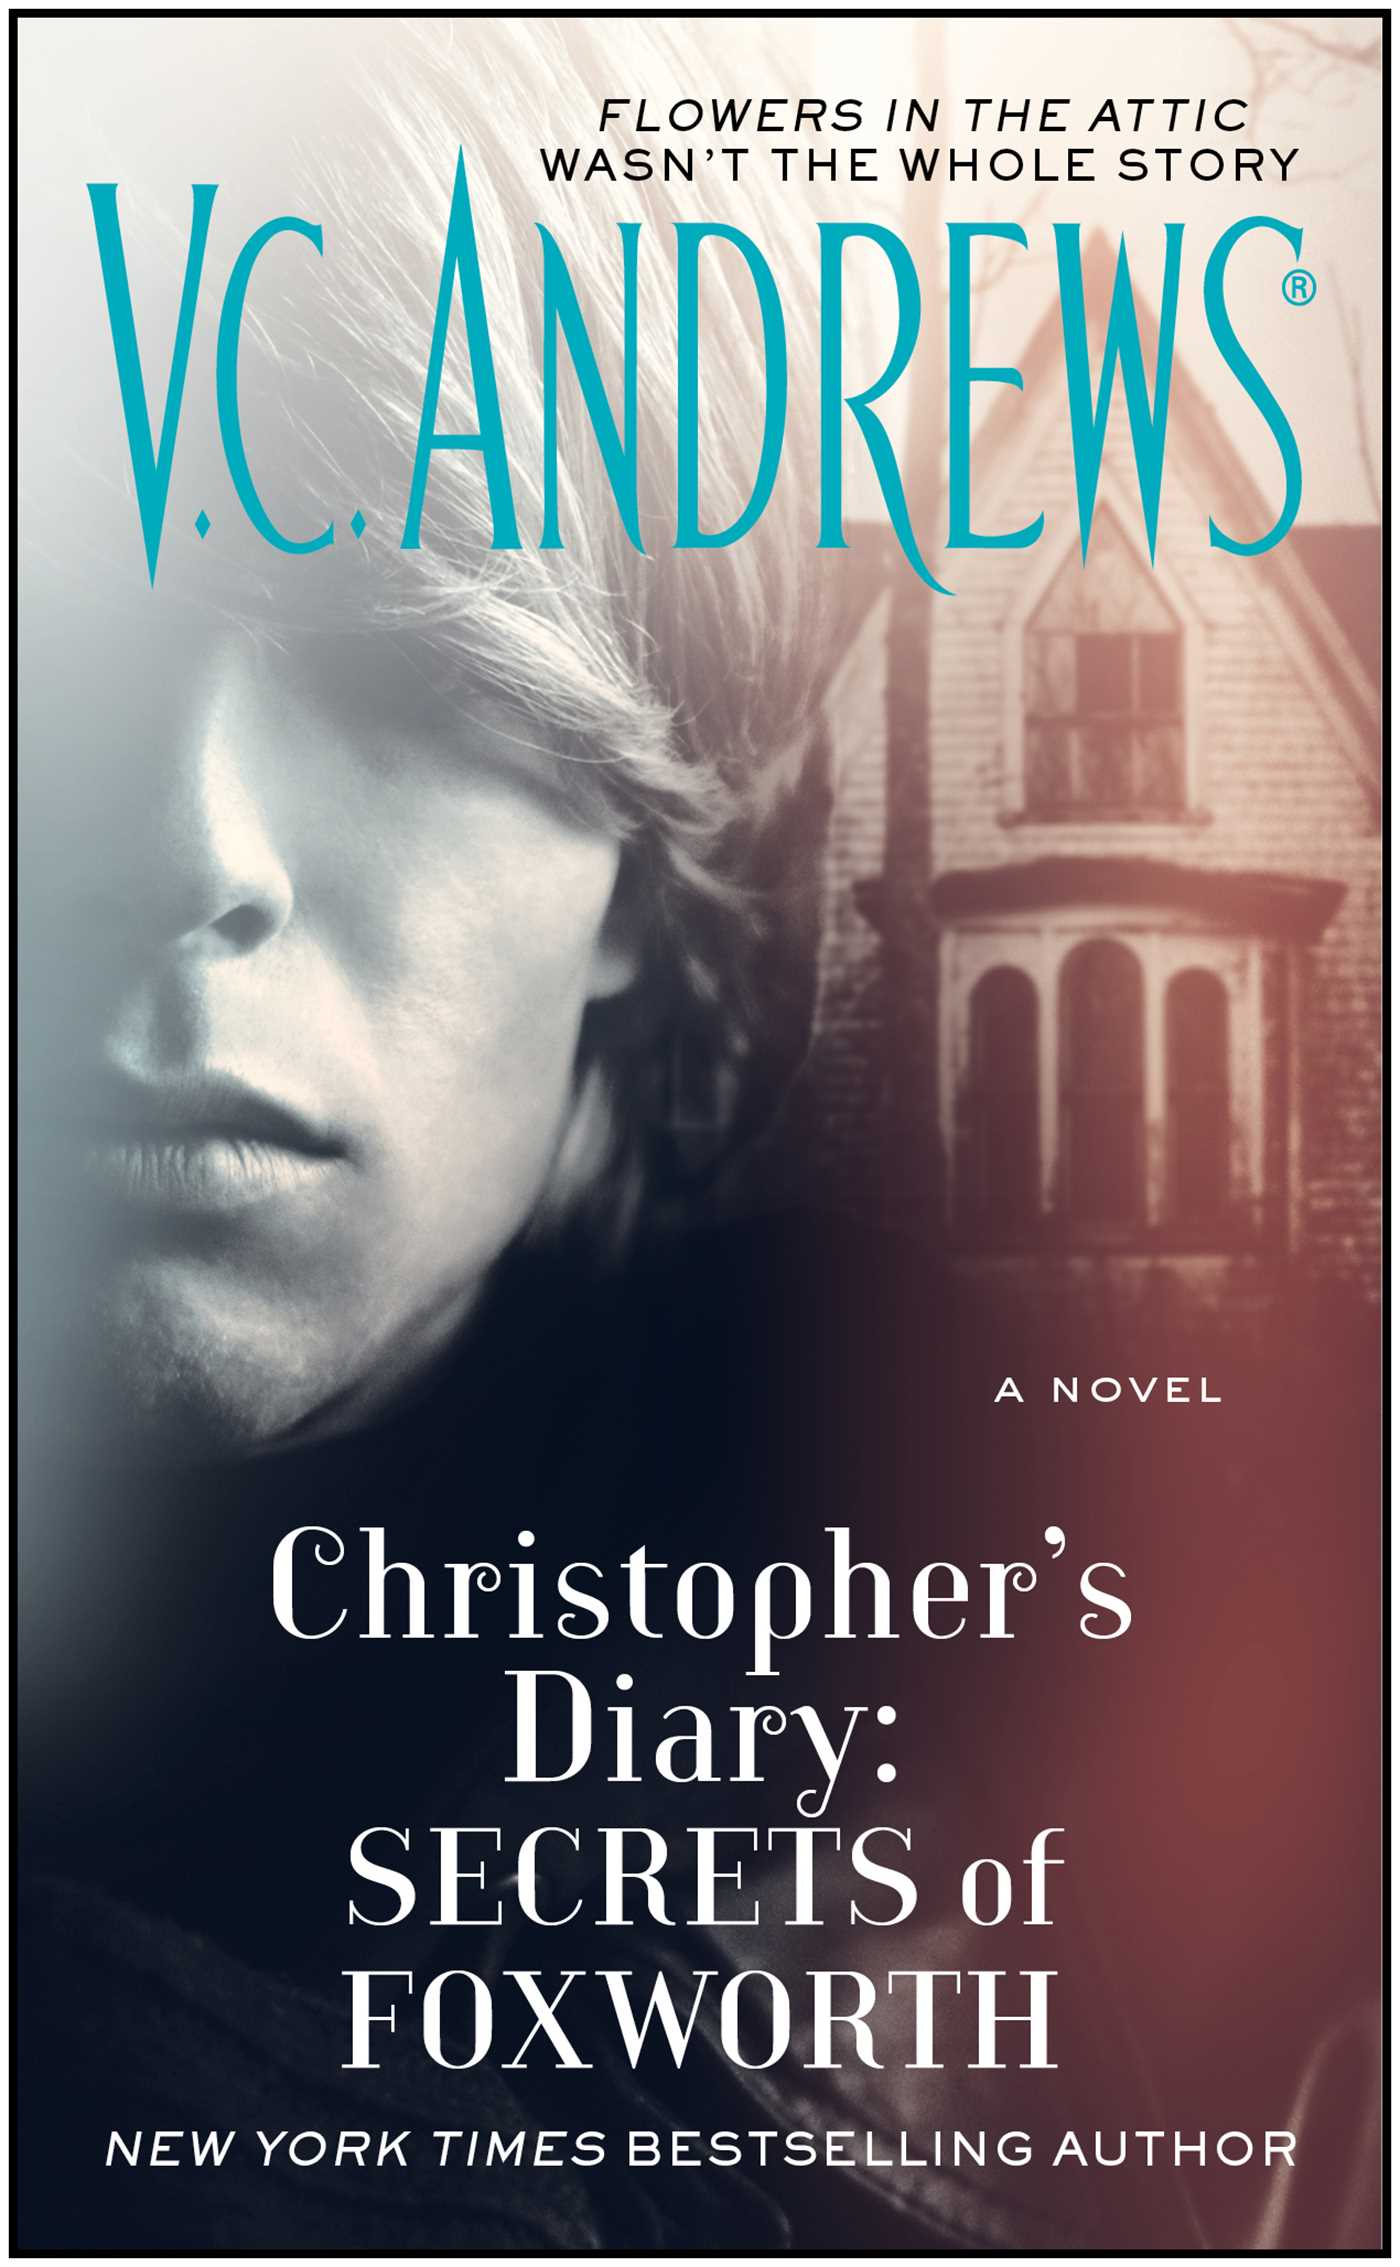 Christophers-diary-secrets-of-foxworth-9781476790589_hr